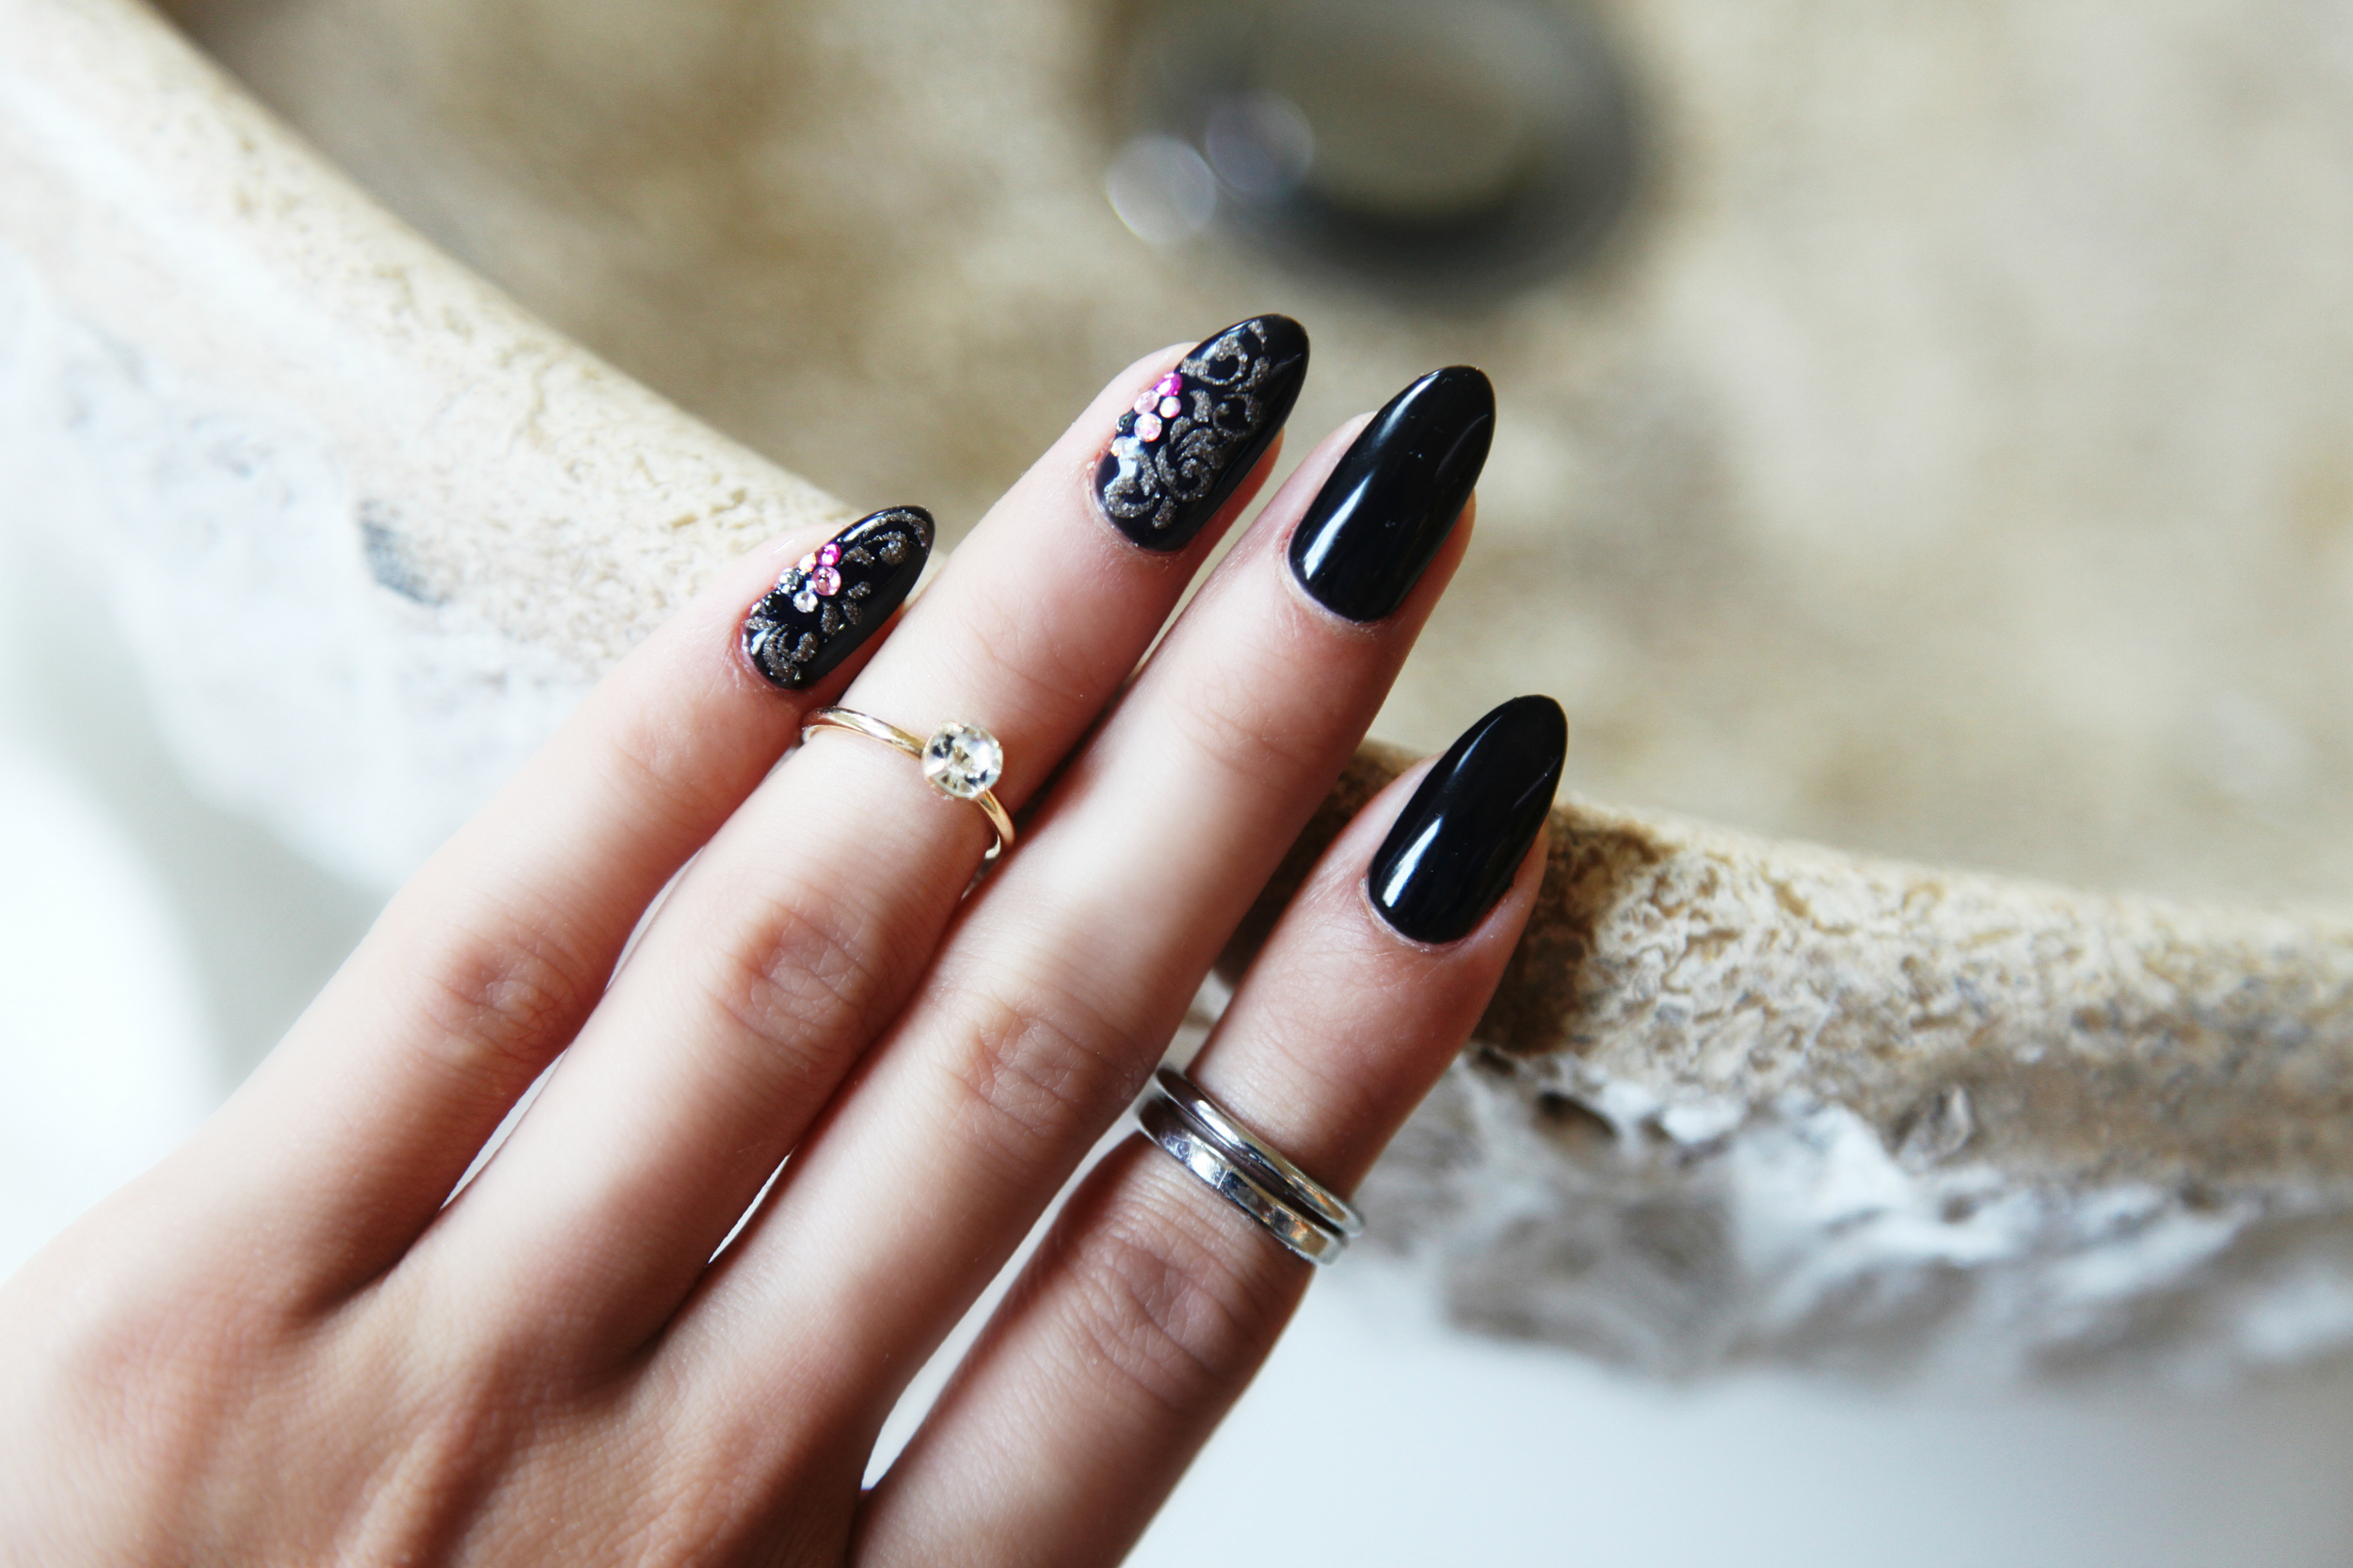 Rogo's Manicure at Nail Boutique